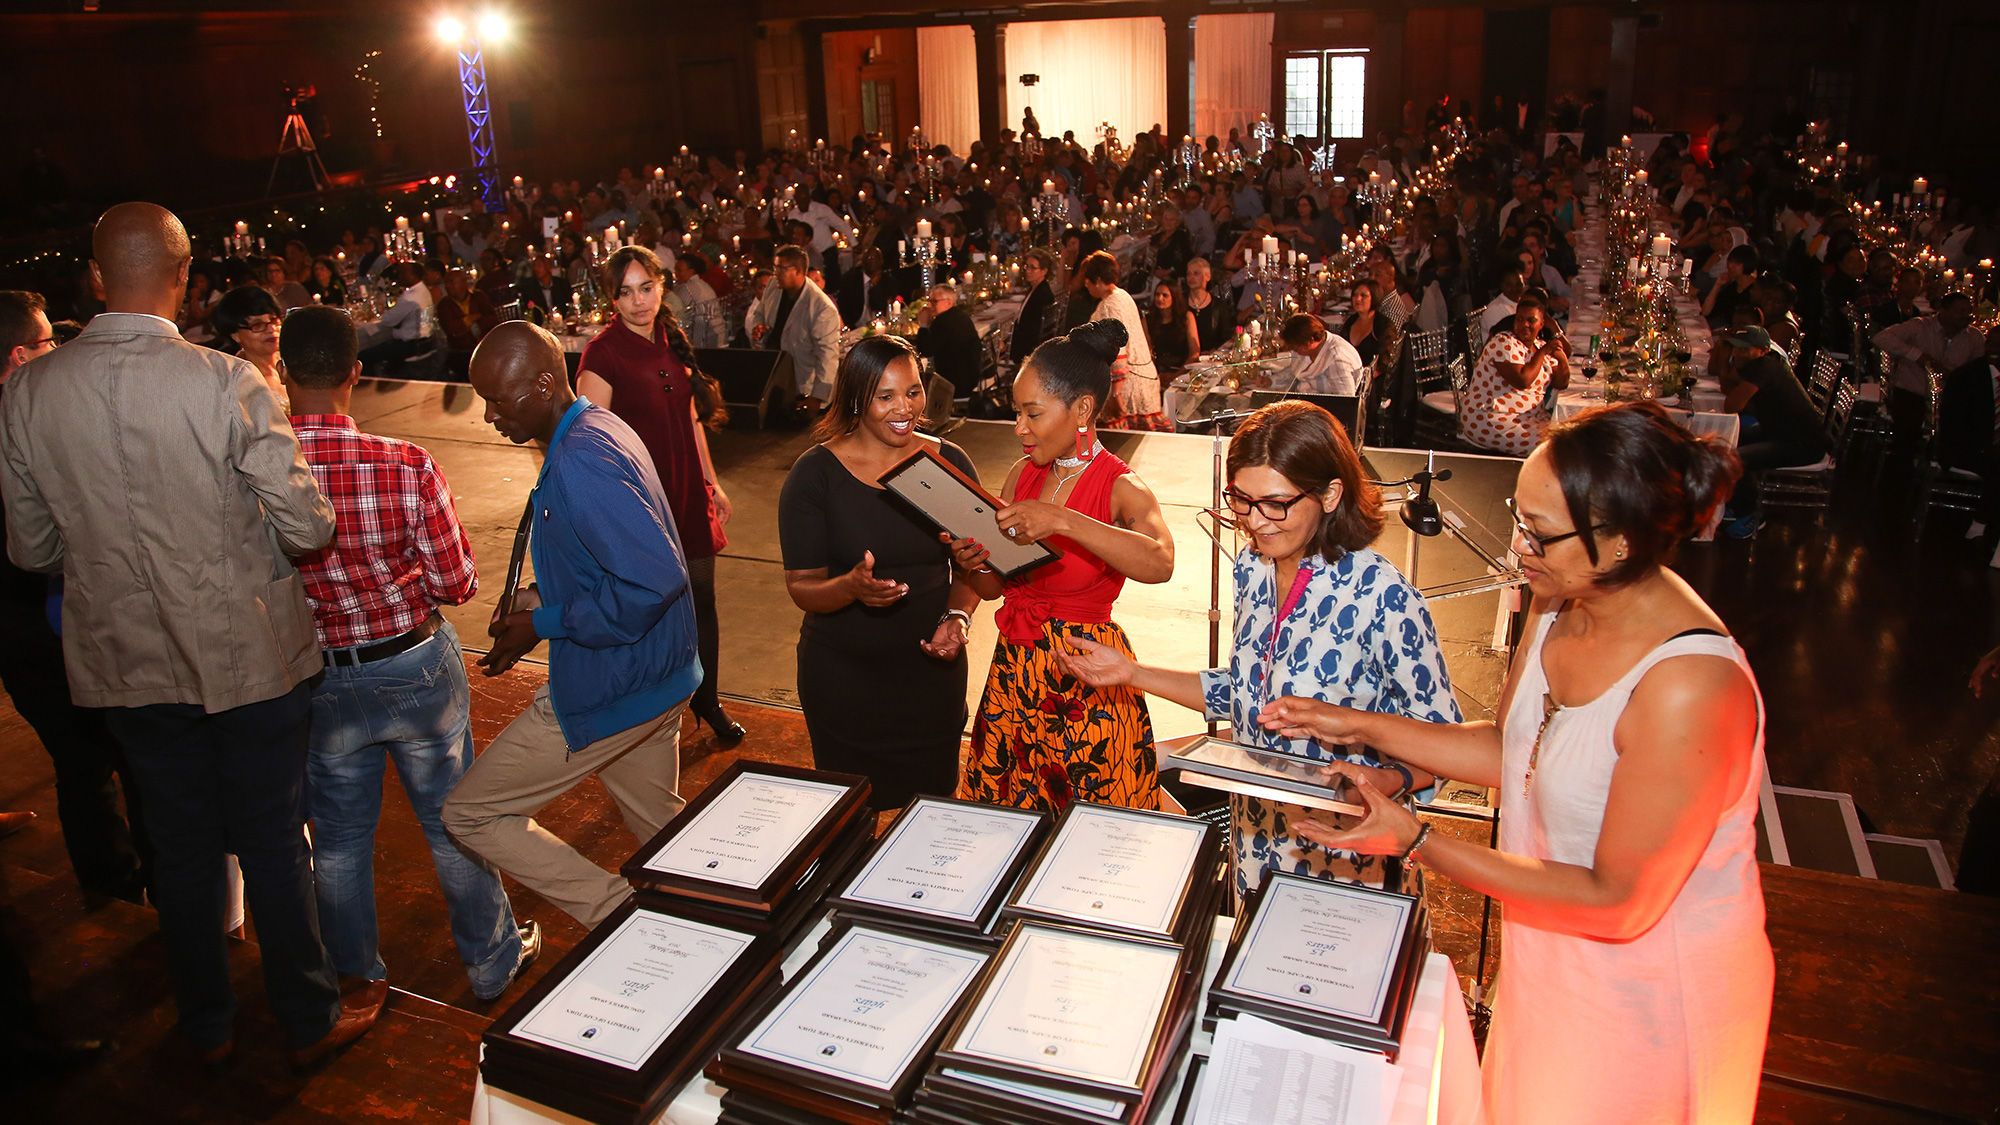 UCT 2018 Annual Awards ceremony   UCT News